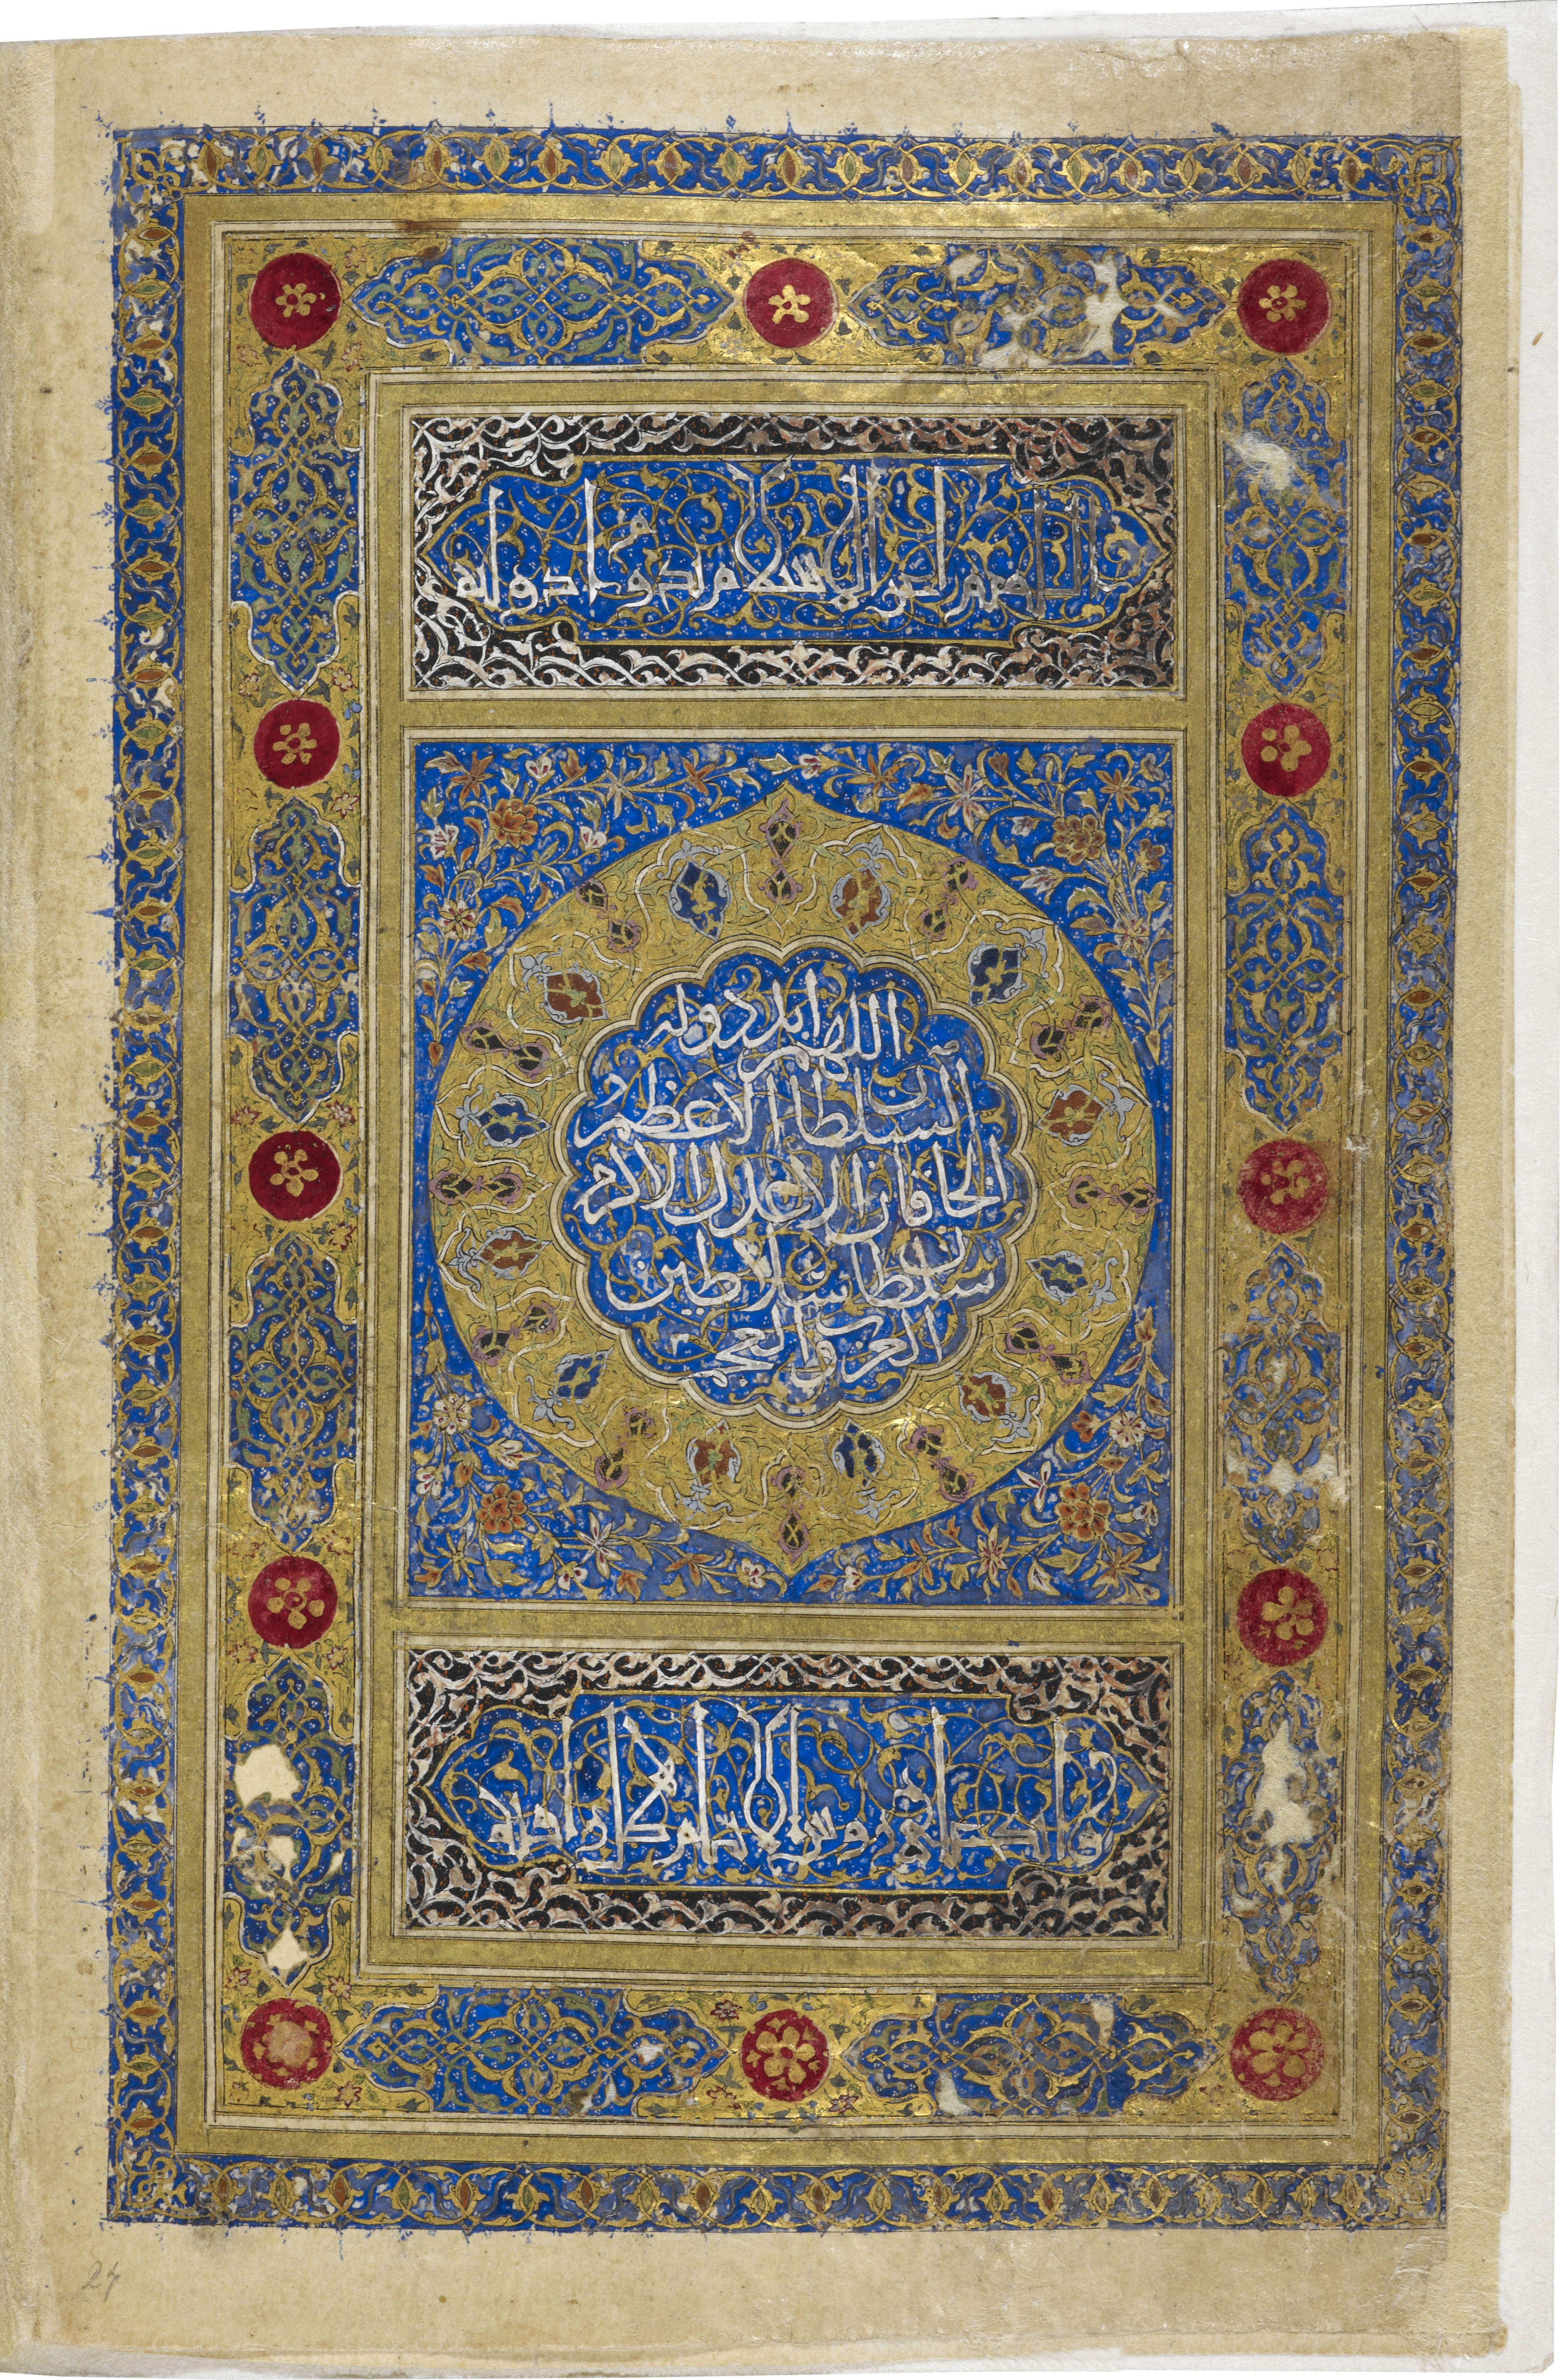 The opening of Timur's grandson Iskandar Sultan's pocket miscellany, f.2v